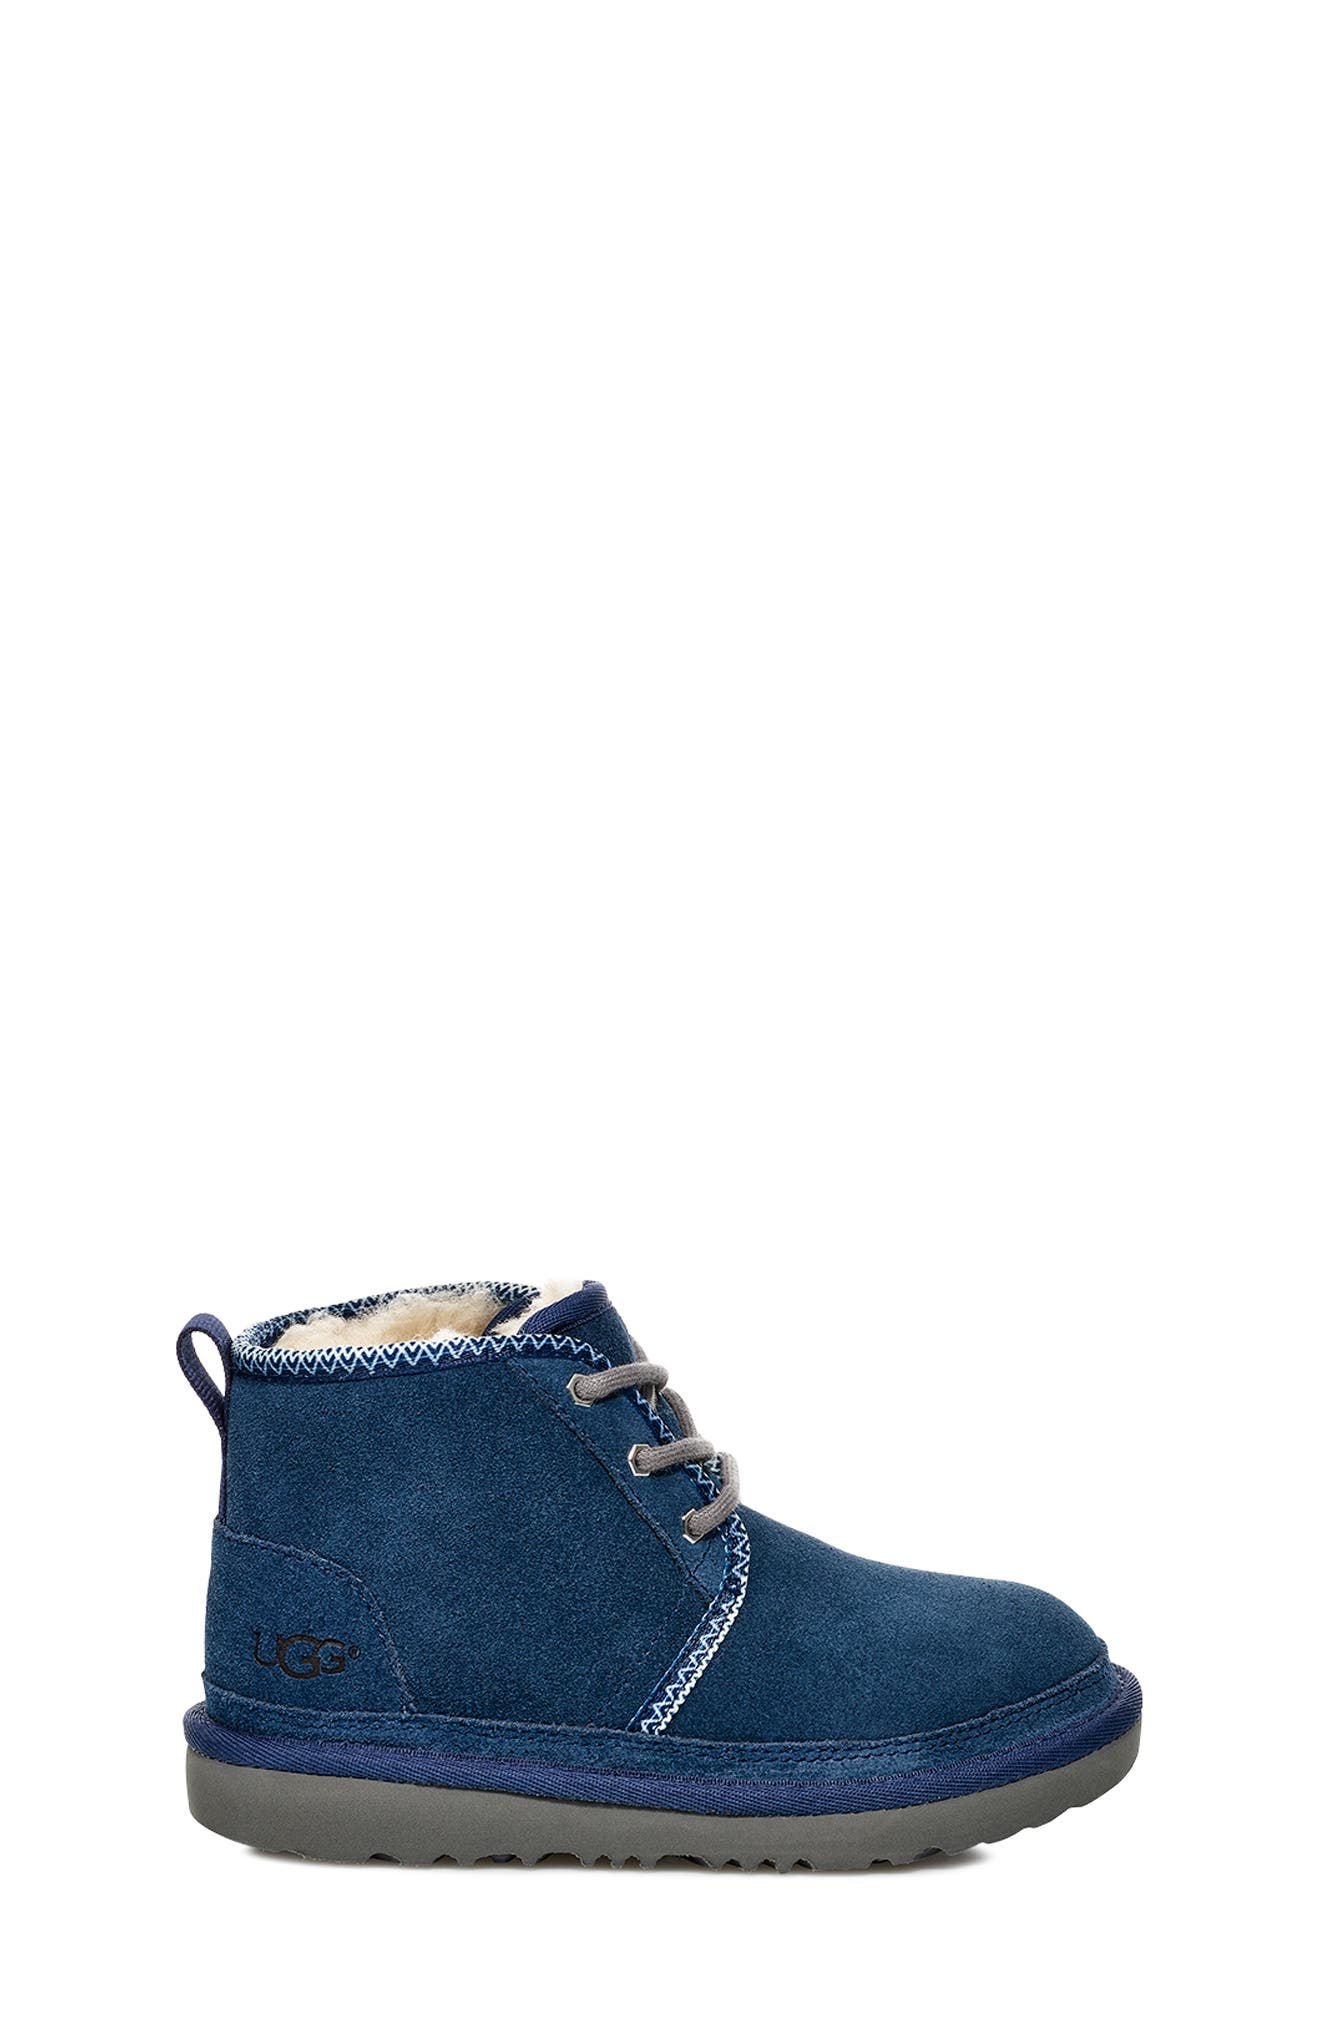 Neumel II Tasman Genuine Shearling Chukka Boot,                             Alternate thumbnail 3, color,                             NAVY / TASMAN